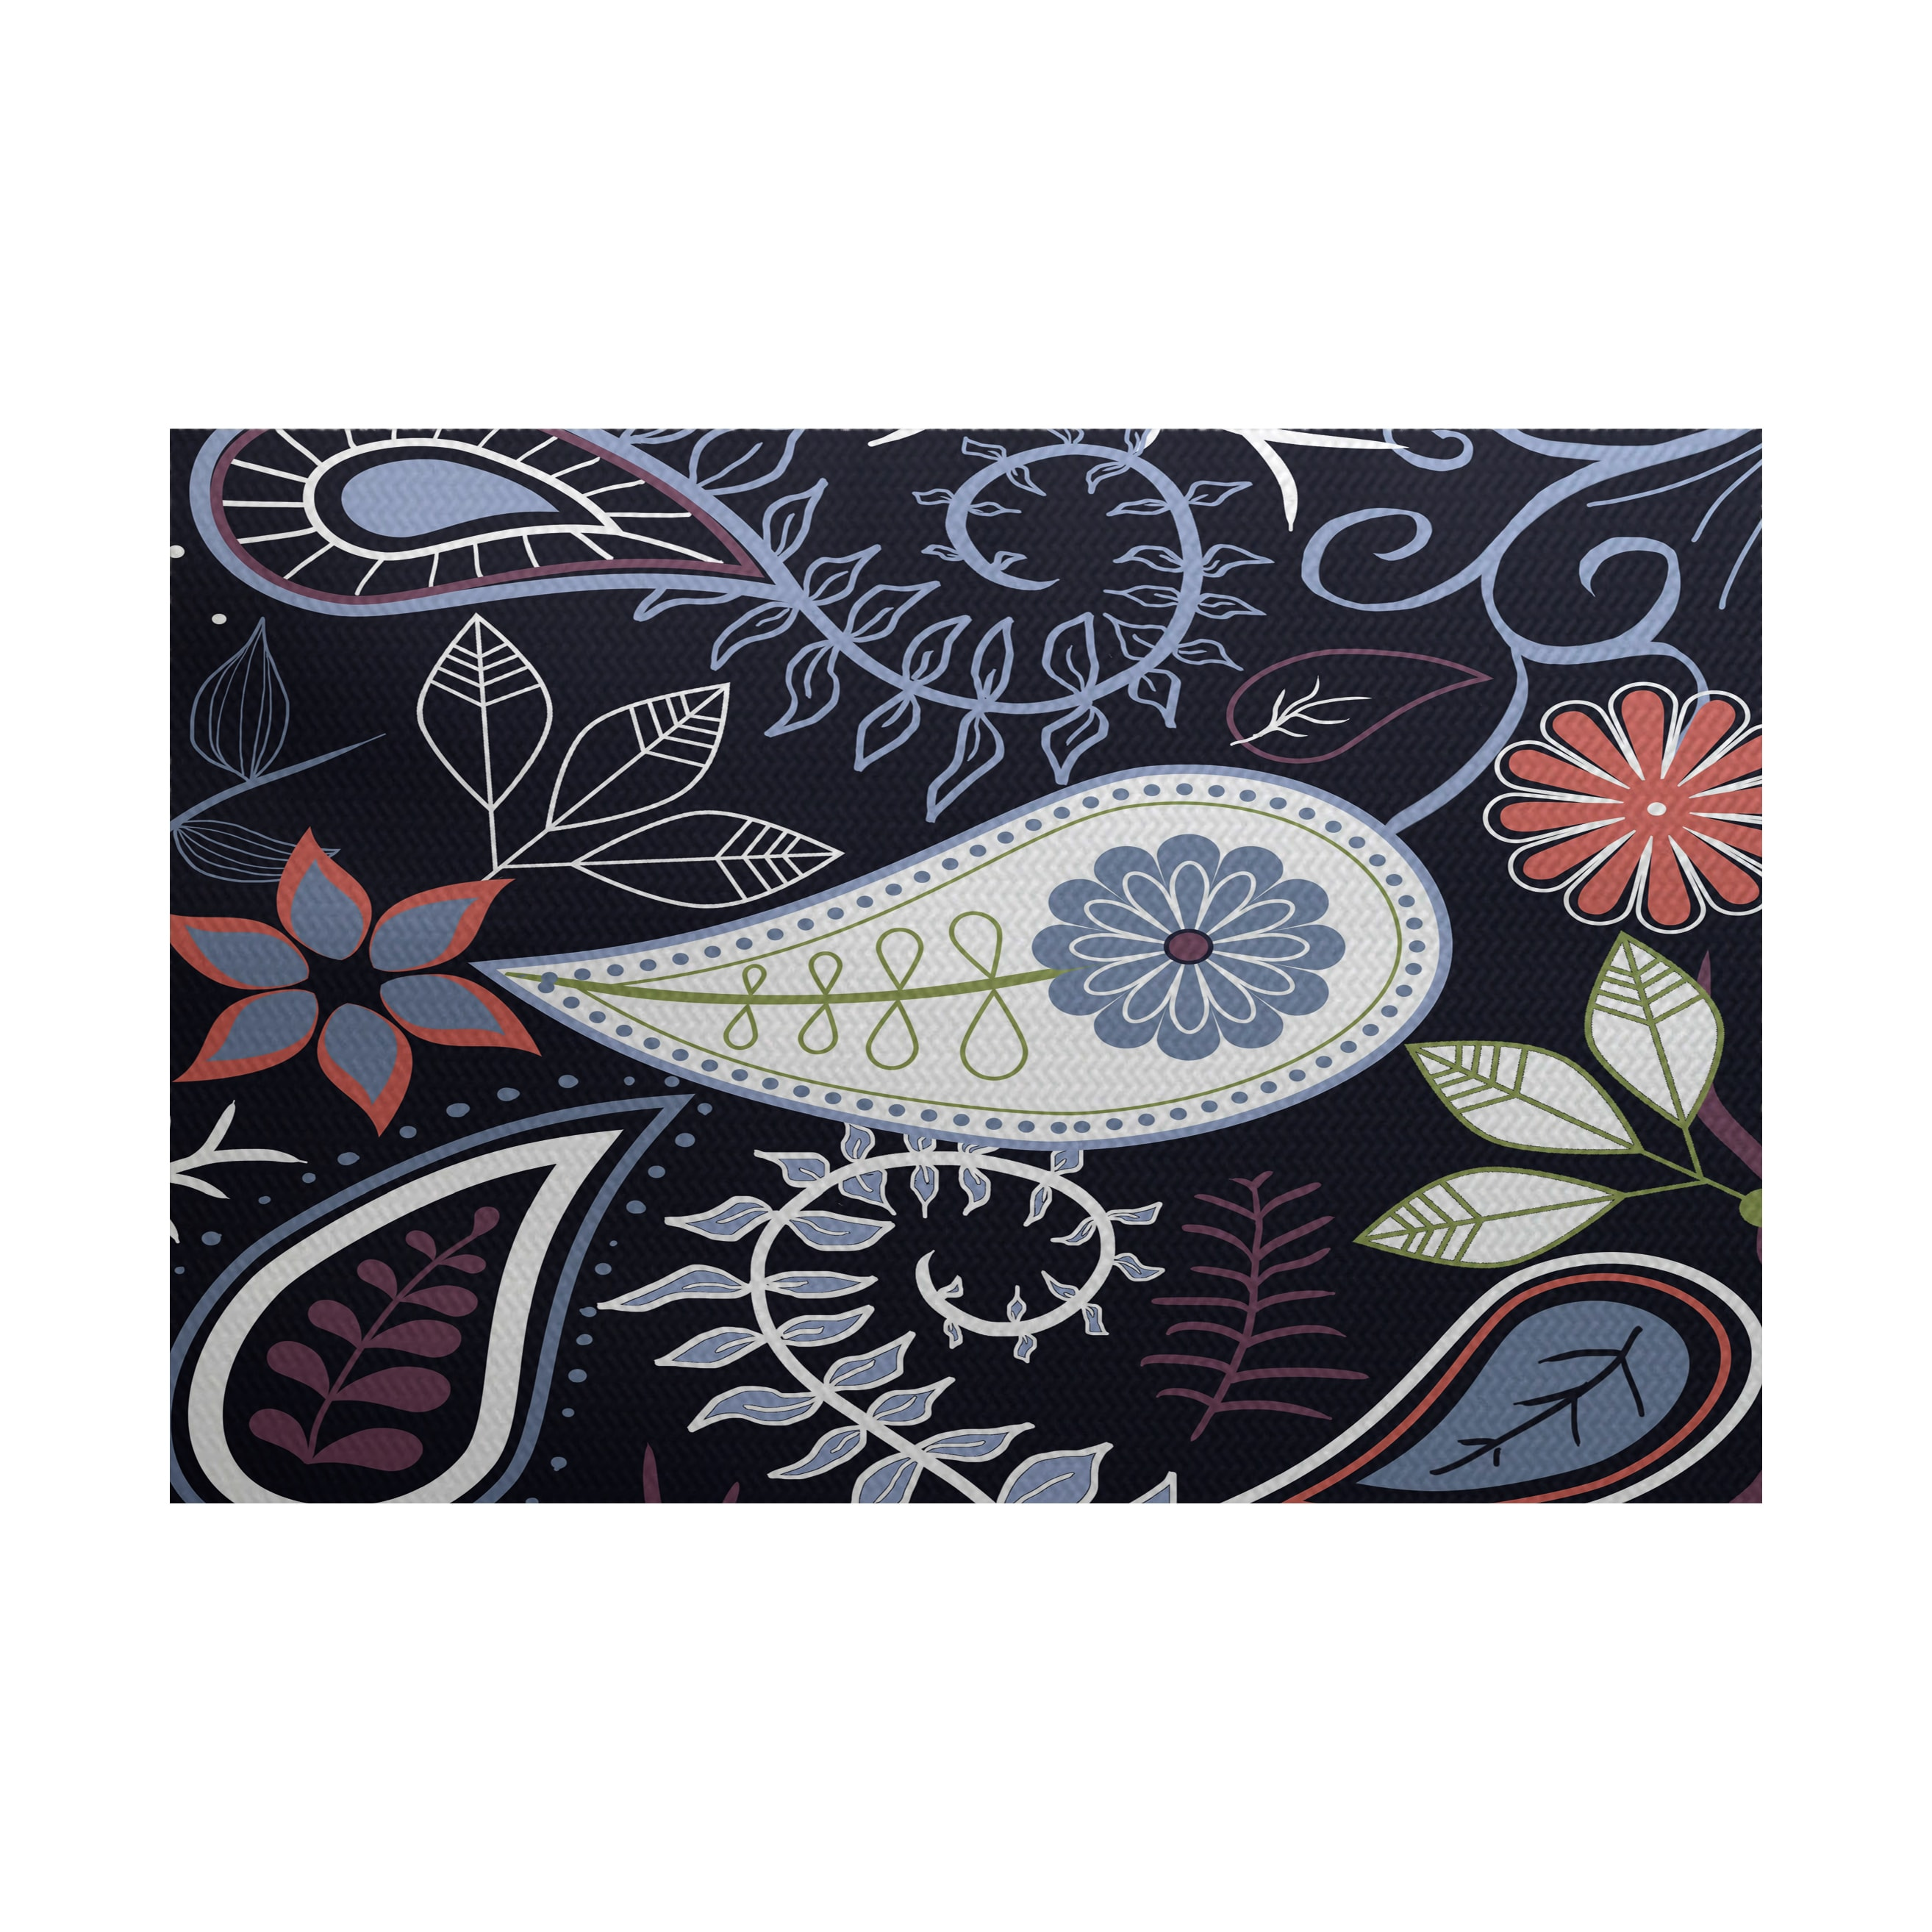 E By Design Paisley Floral Print Rug (2' x 3') (Teal), Bl...